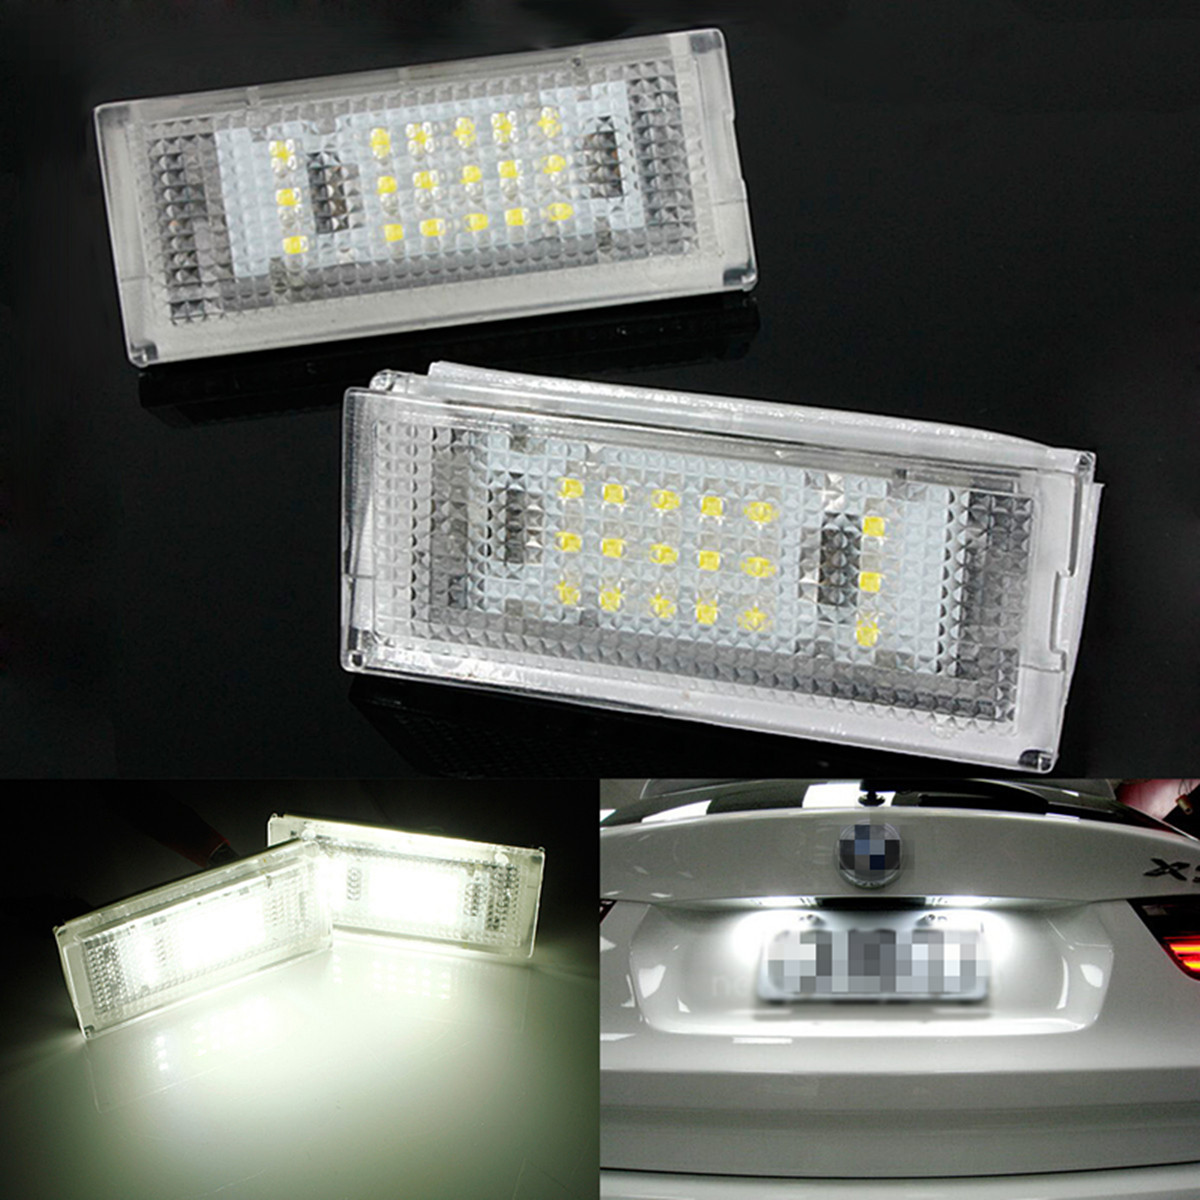 2Pcs 18 LED 6000K For HID License Plate Light Number Plate Lamp For BMW E46 4D 4Doors 323i 325i 328i 99-03 Error Free film fuser film sleeve for laser jet 4100 rg5 5068 film